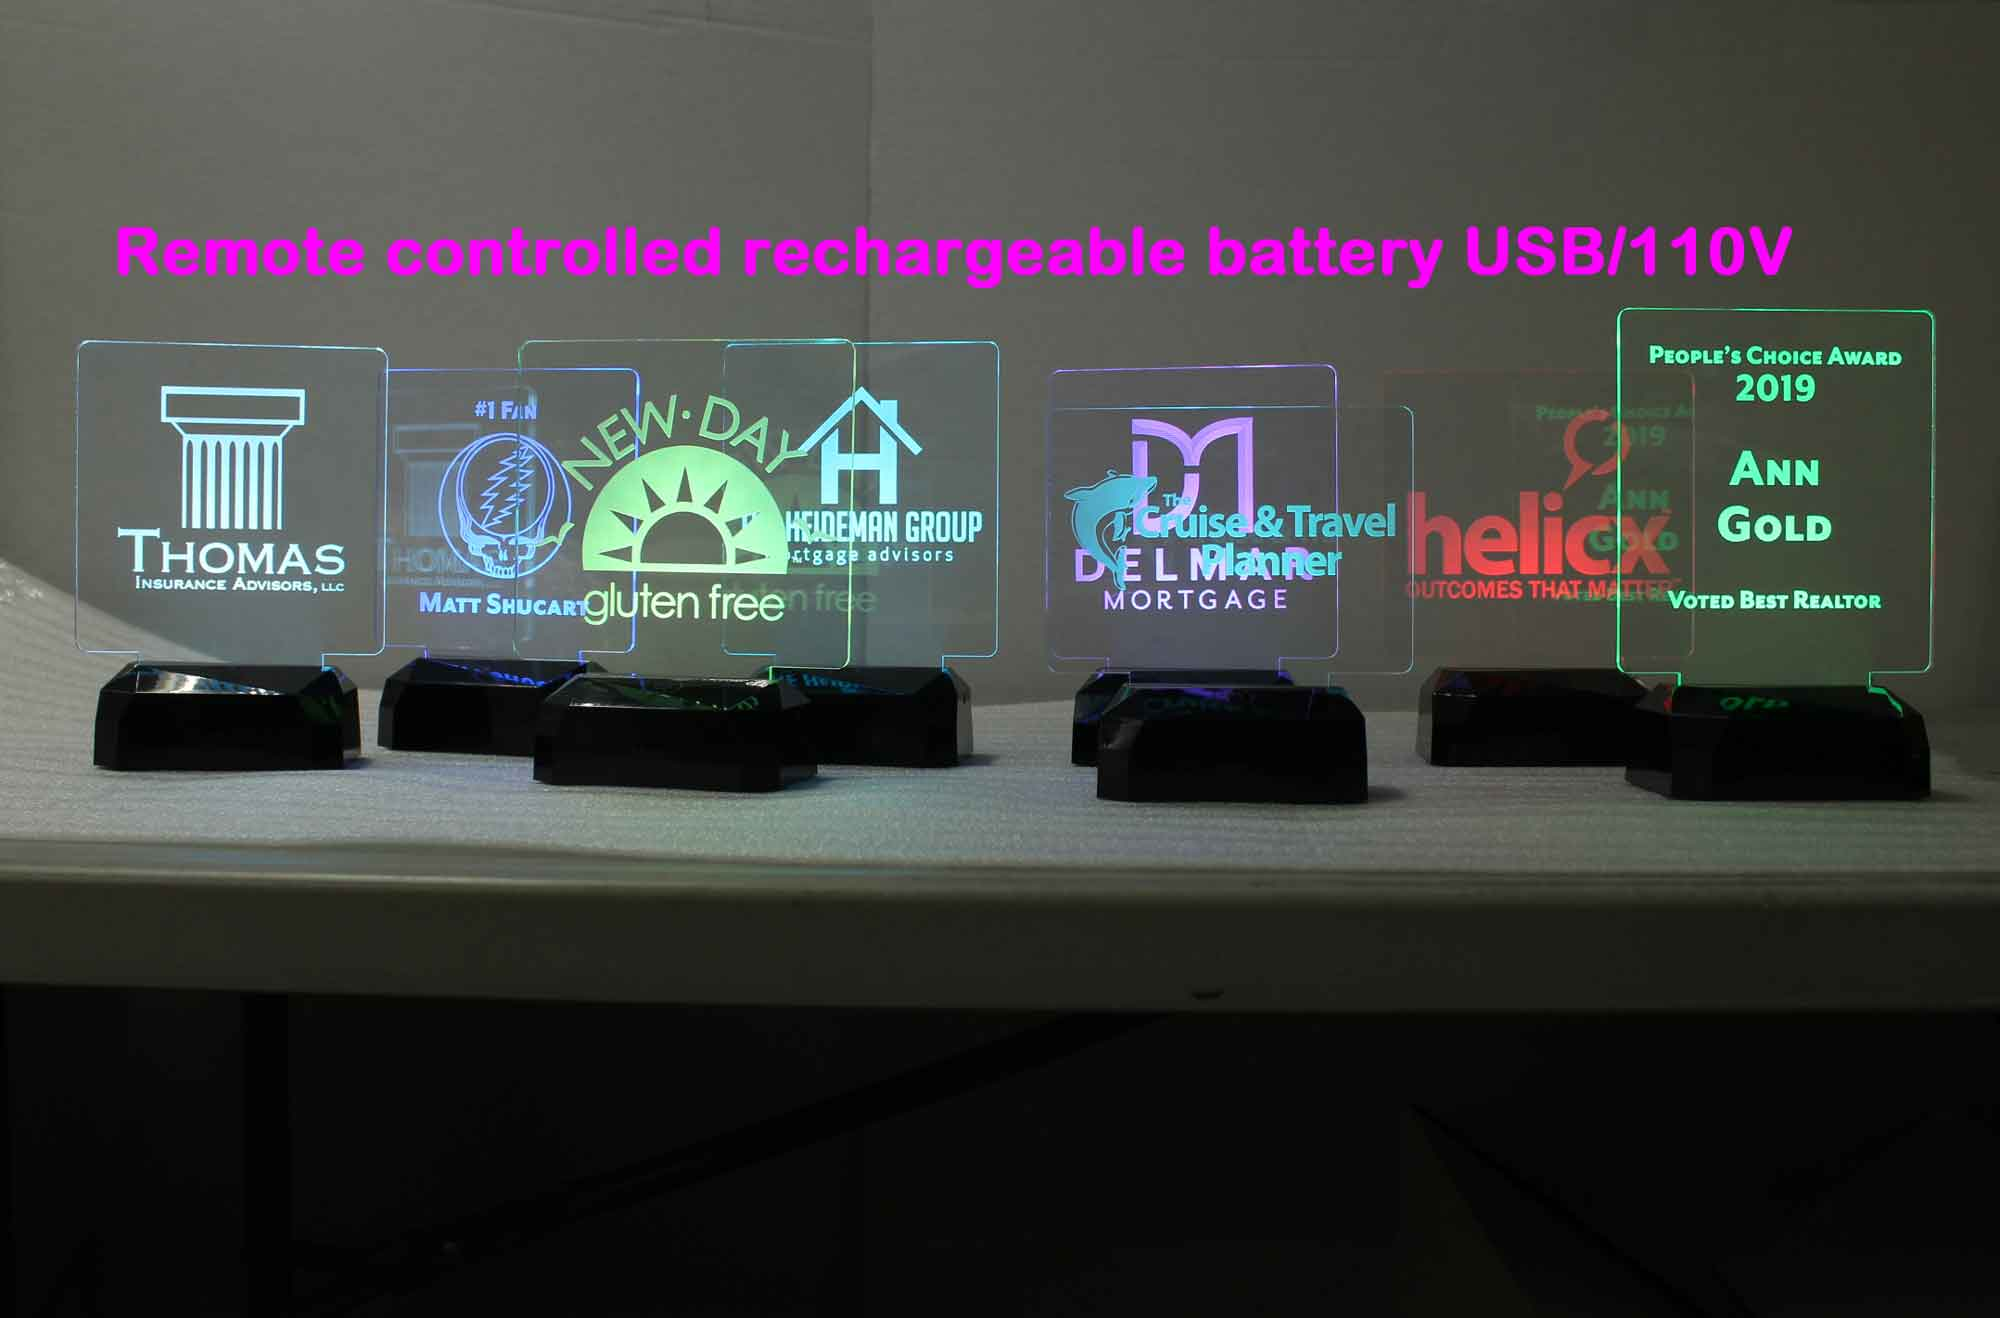 Rechargeable Battery USB/110V/240V Personalized night light, Desk sign, award